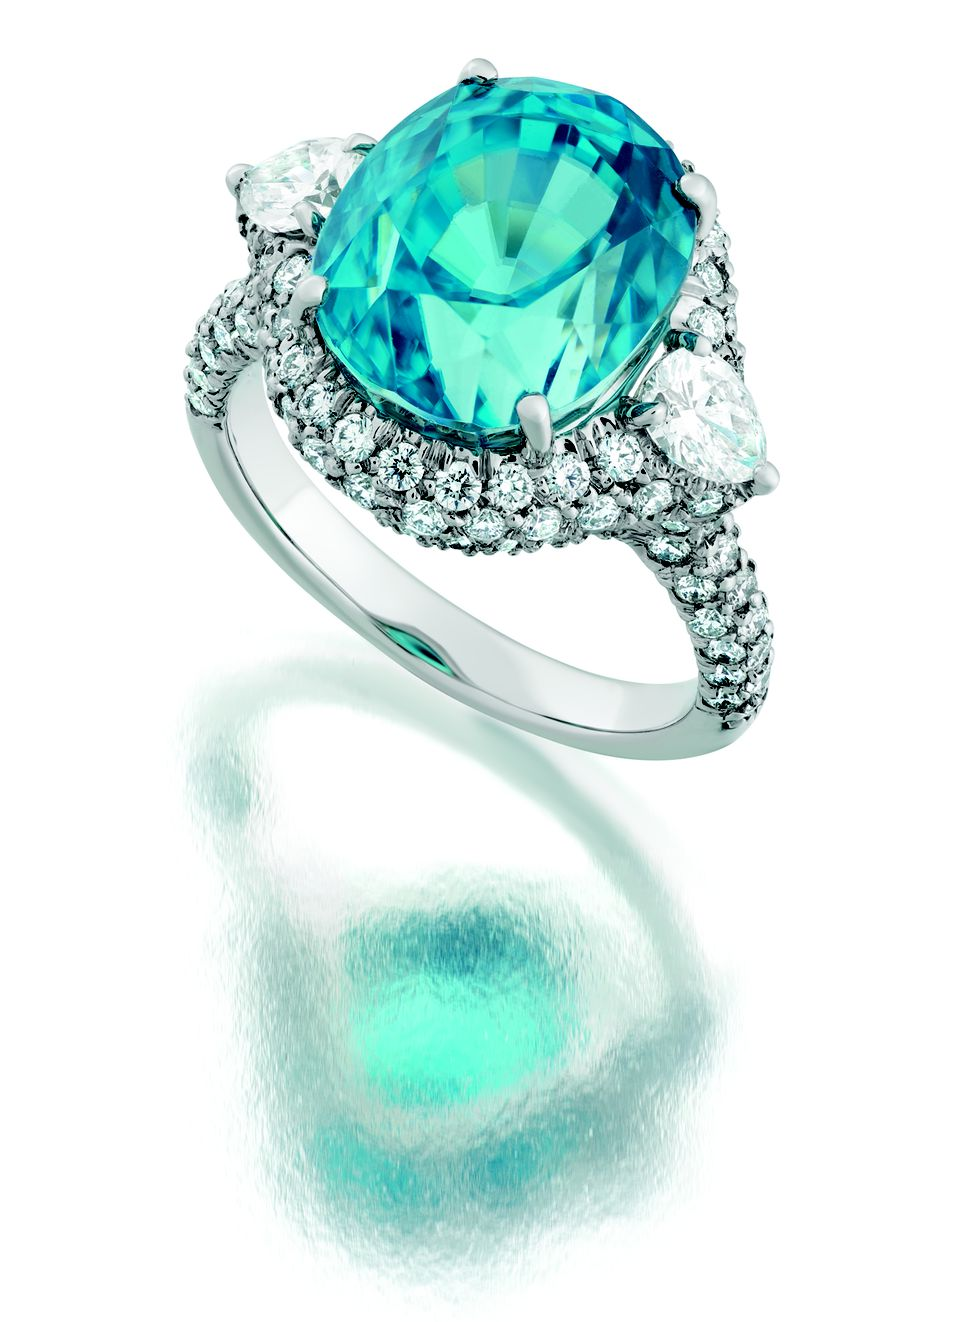 Powerful in Paraiba Tourmaline